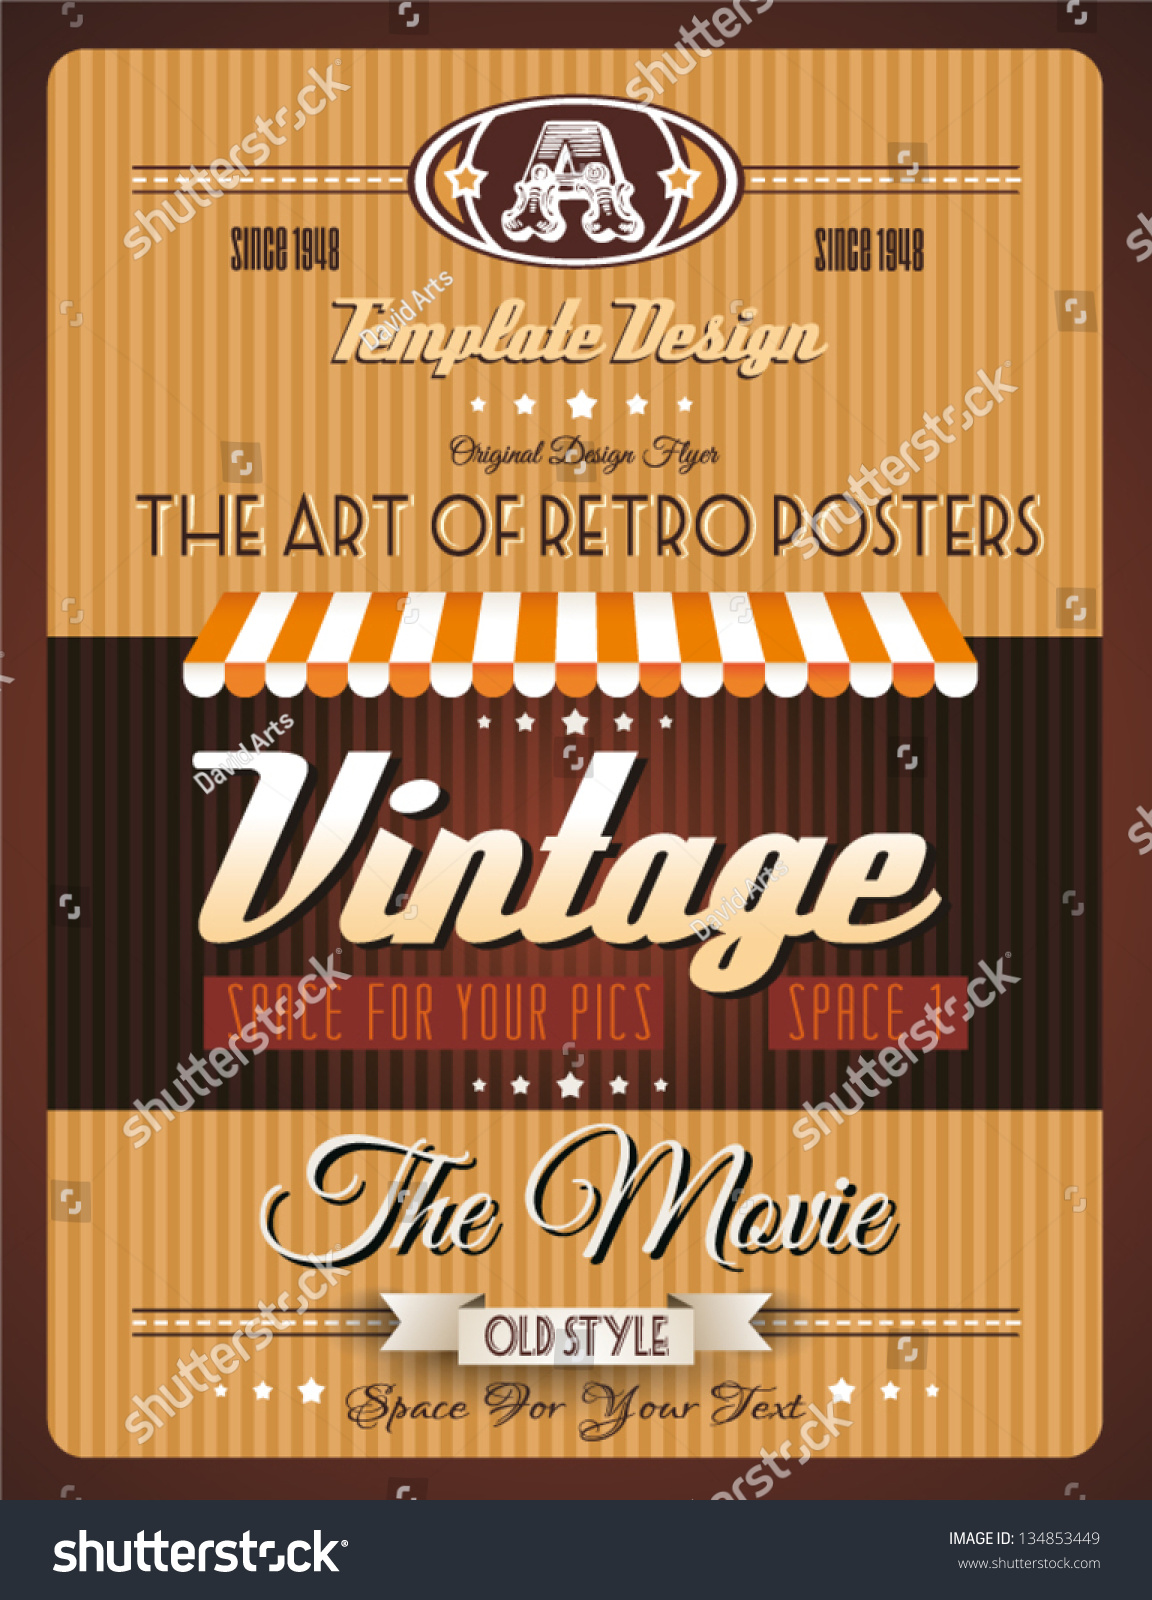 Old Book Cover Posters ~ Vintage retro page template for a variety of purposes